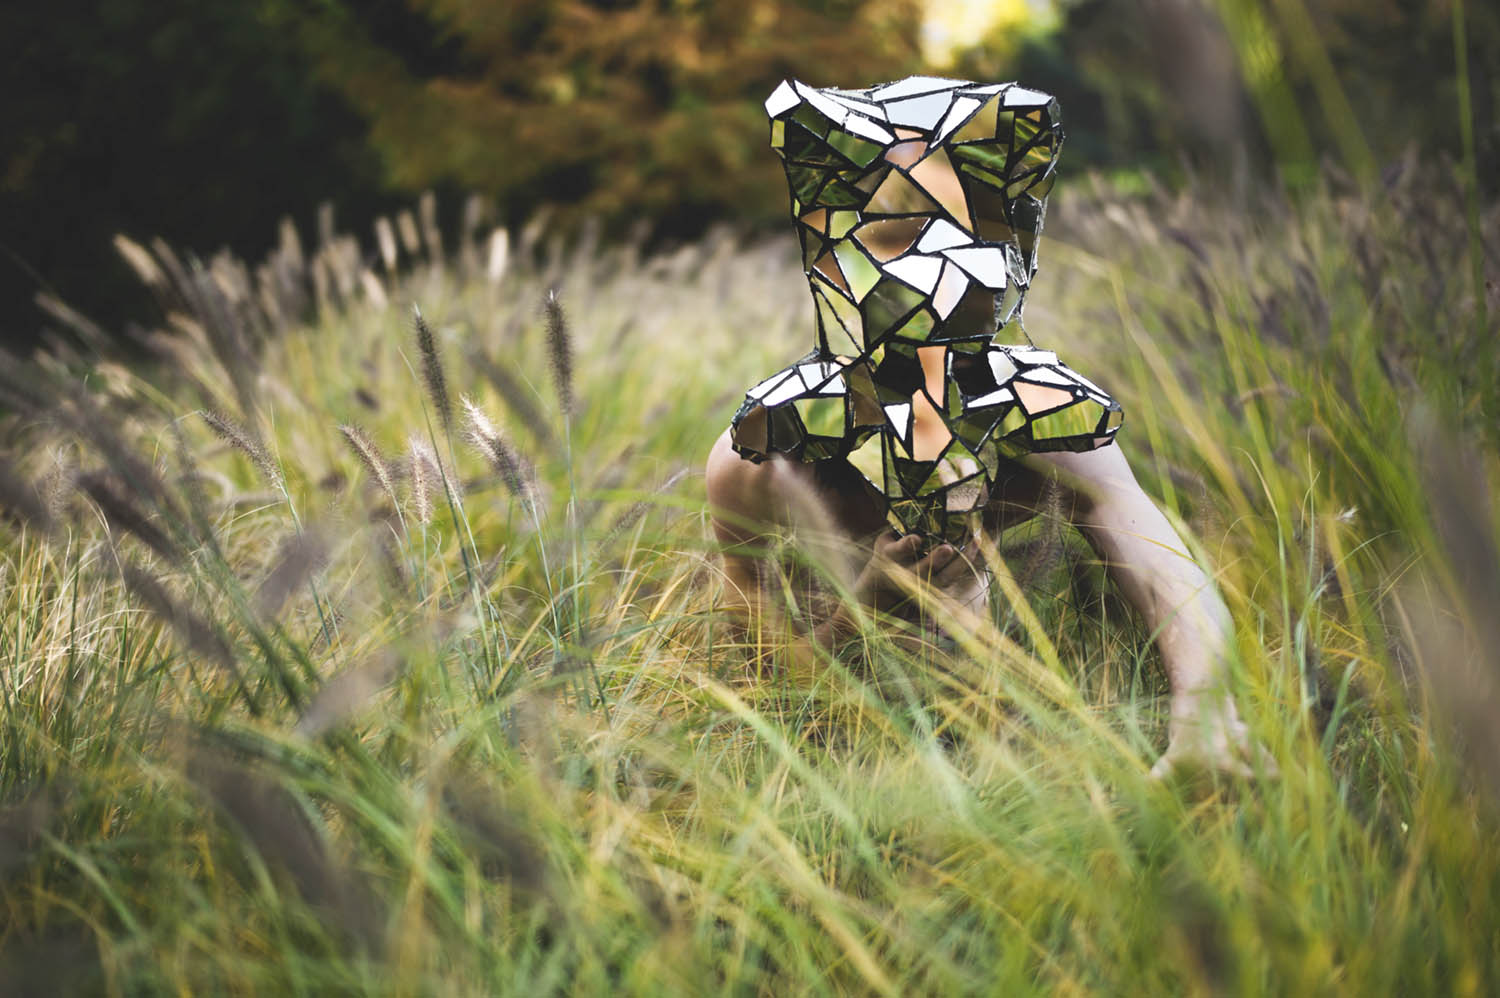 Leonard Condemine - iridescent masked figure in the grass